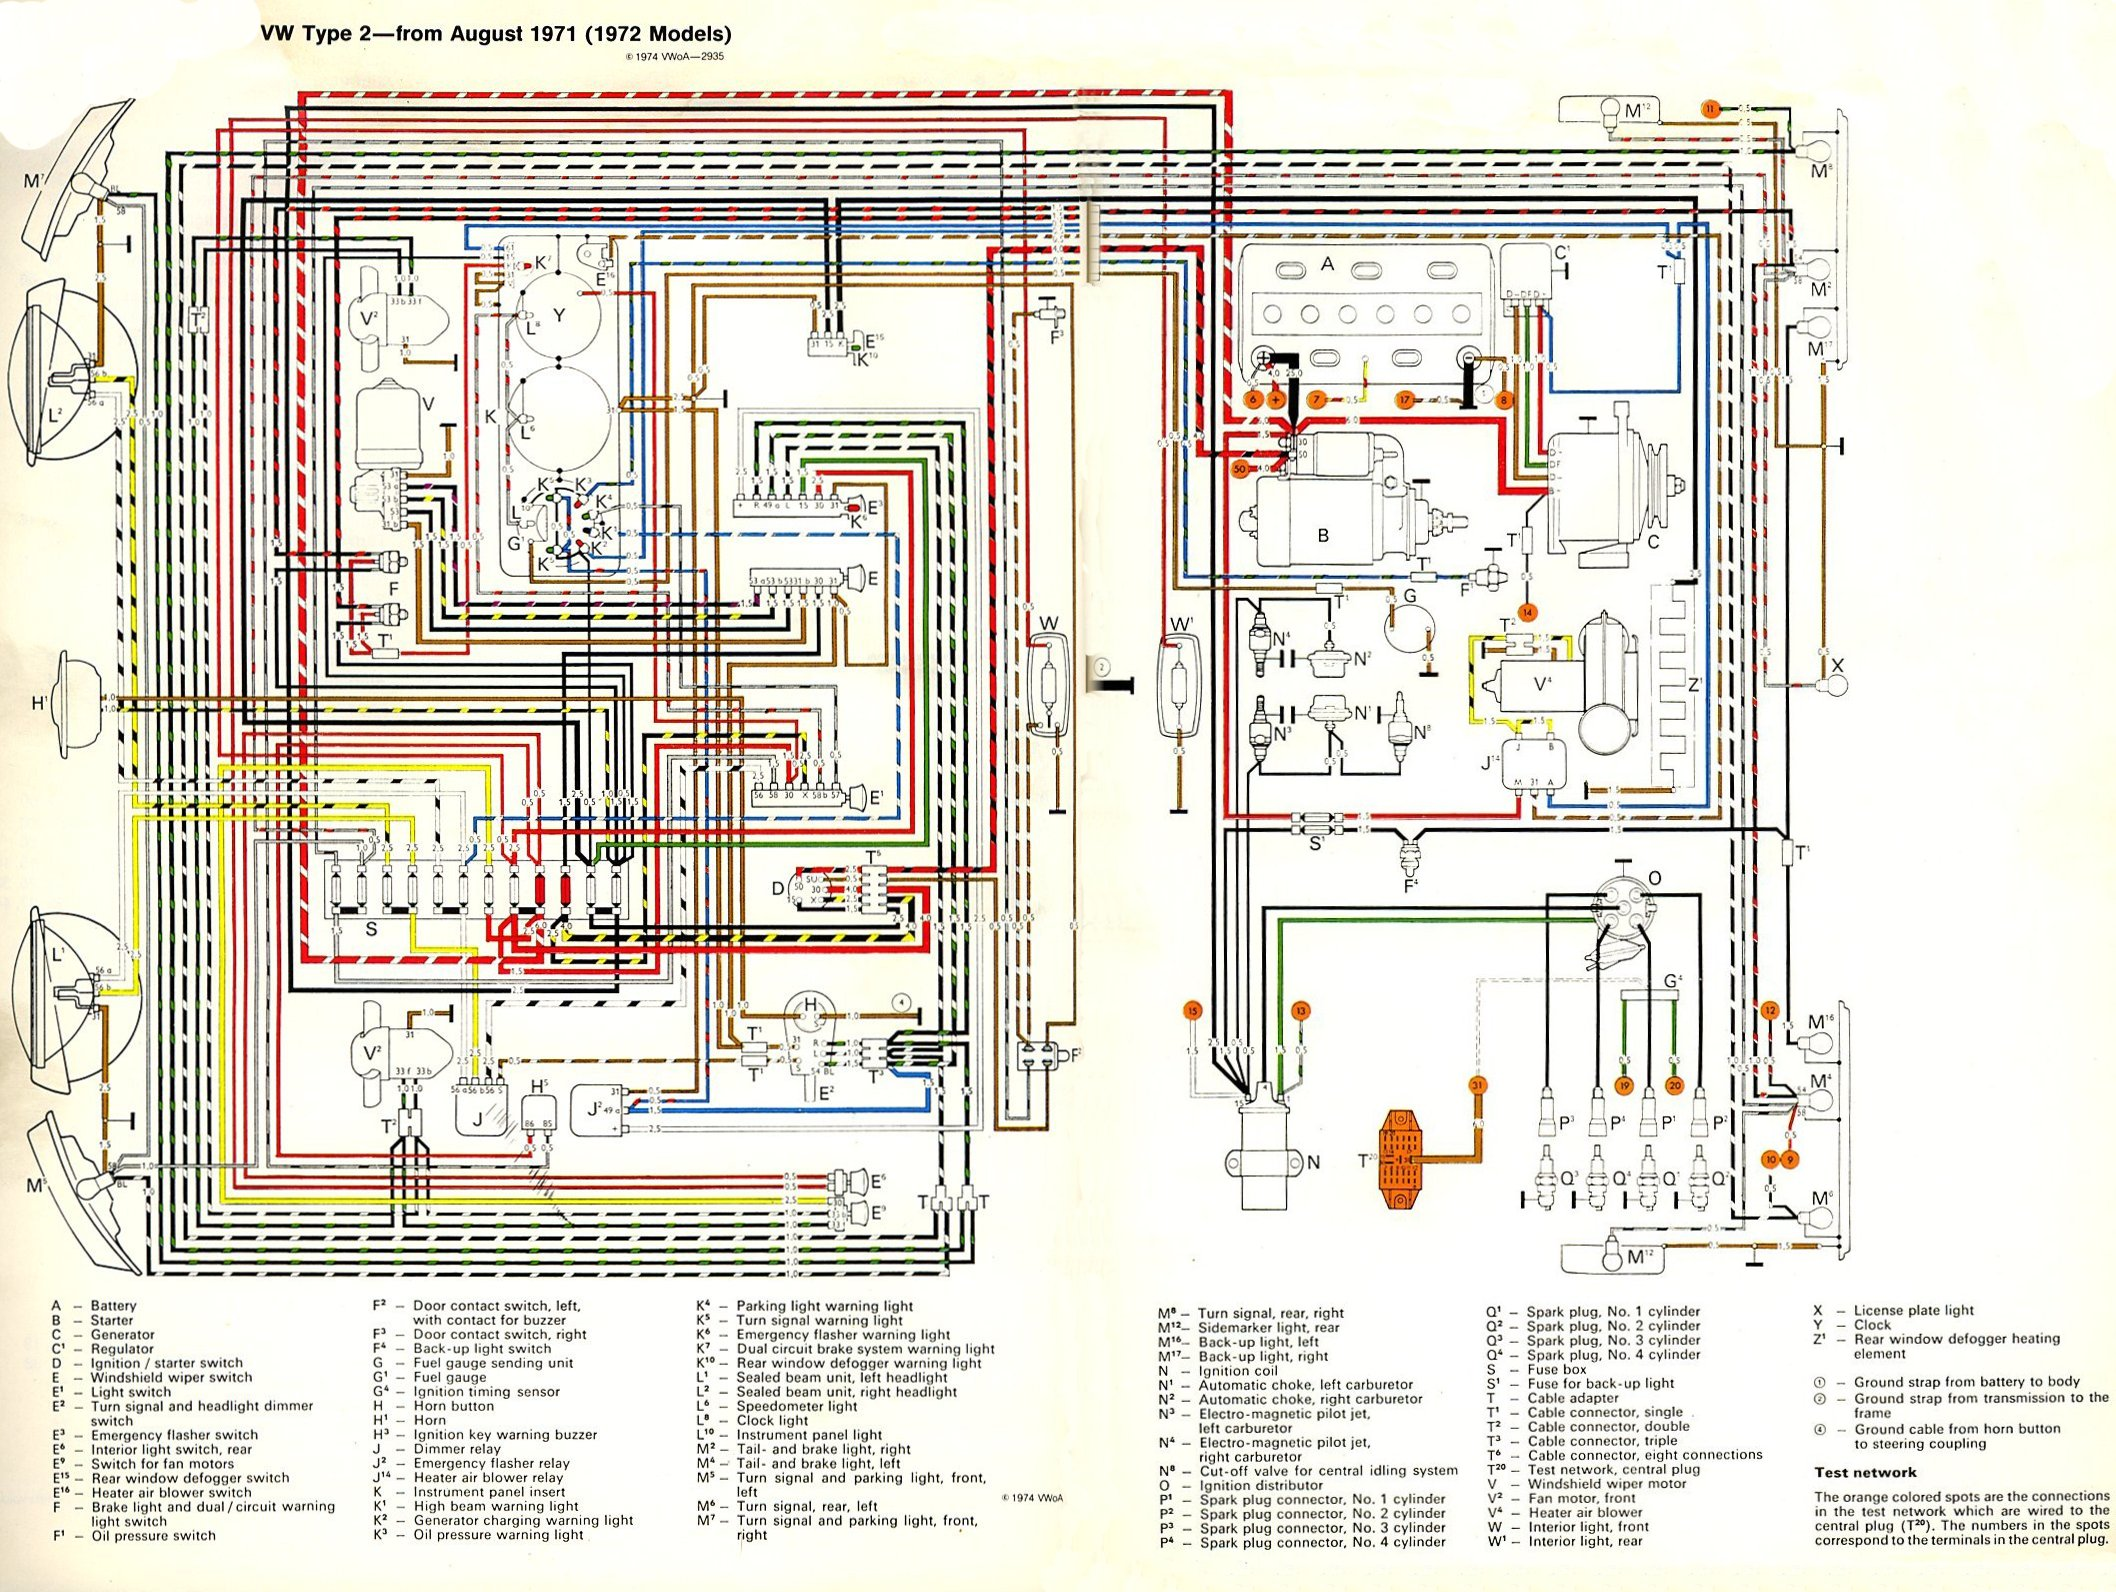 bus_1972_wiring 28 [ vw bus wiring diagram ] 1977 vw bus wiring diagram 1976 vw 1978 vw wiring diagram at n-0.co